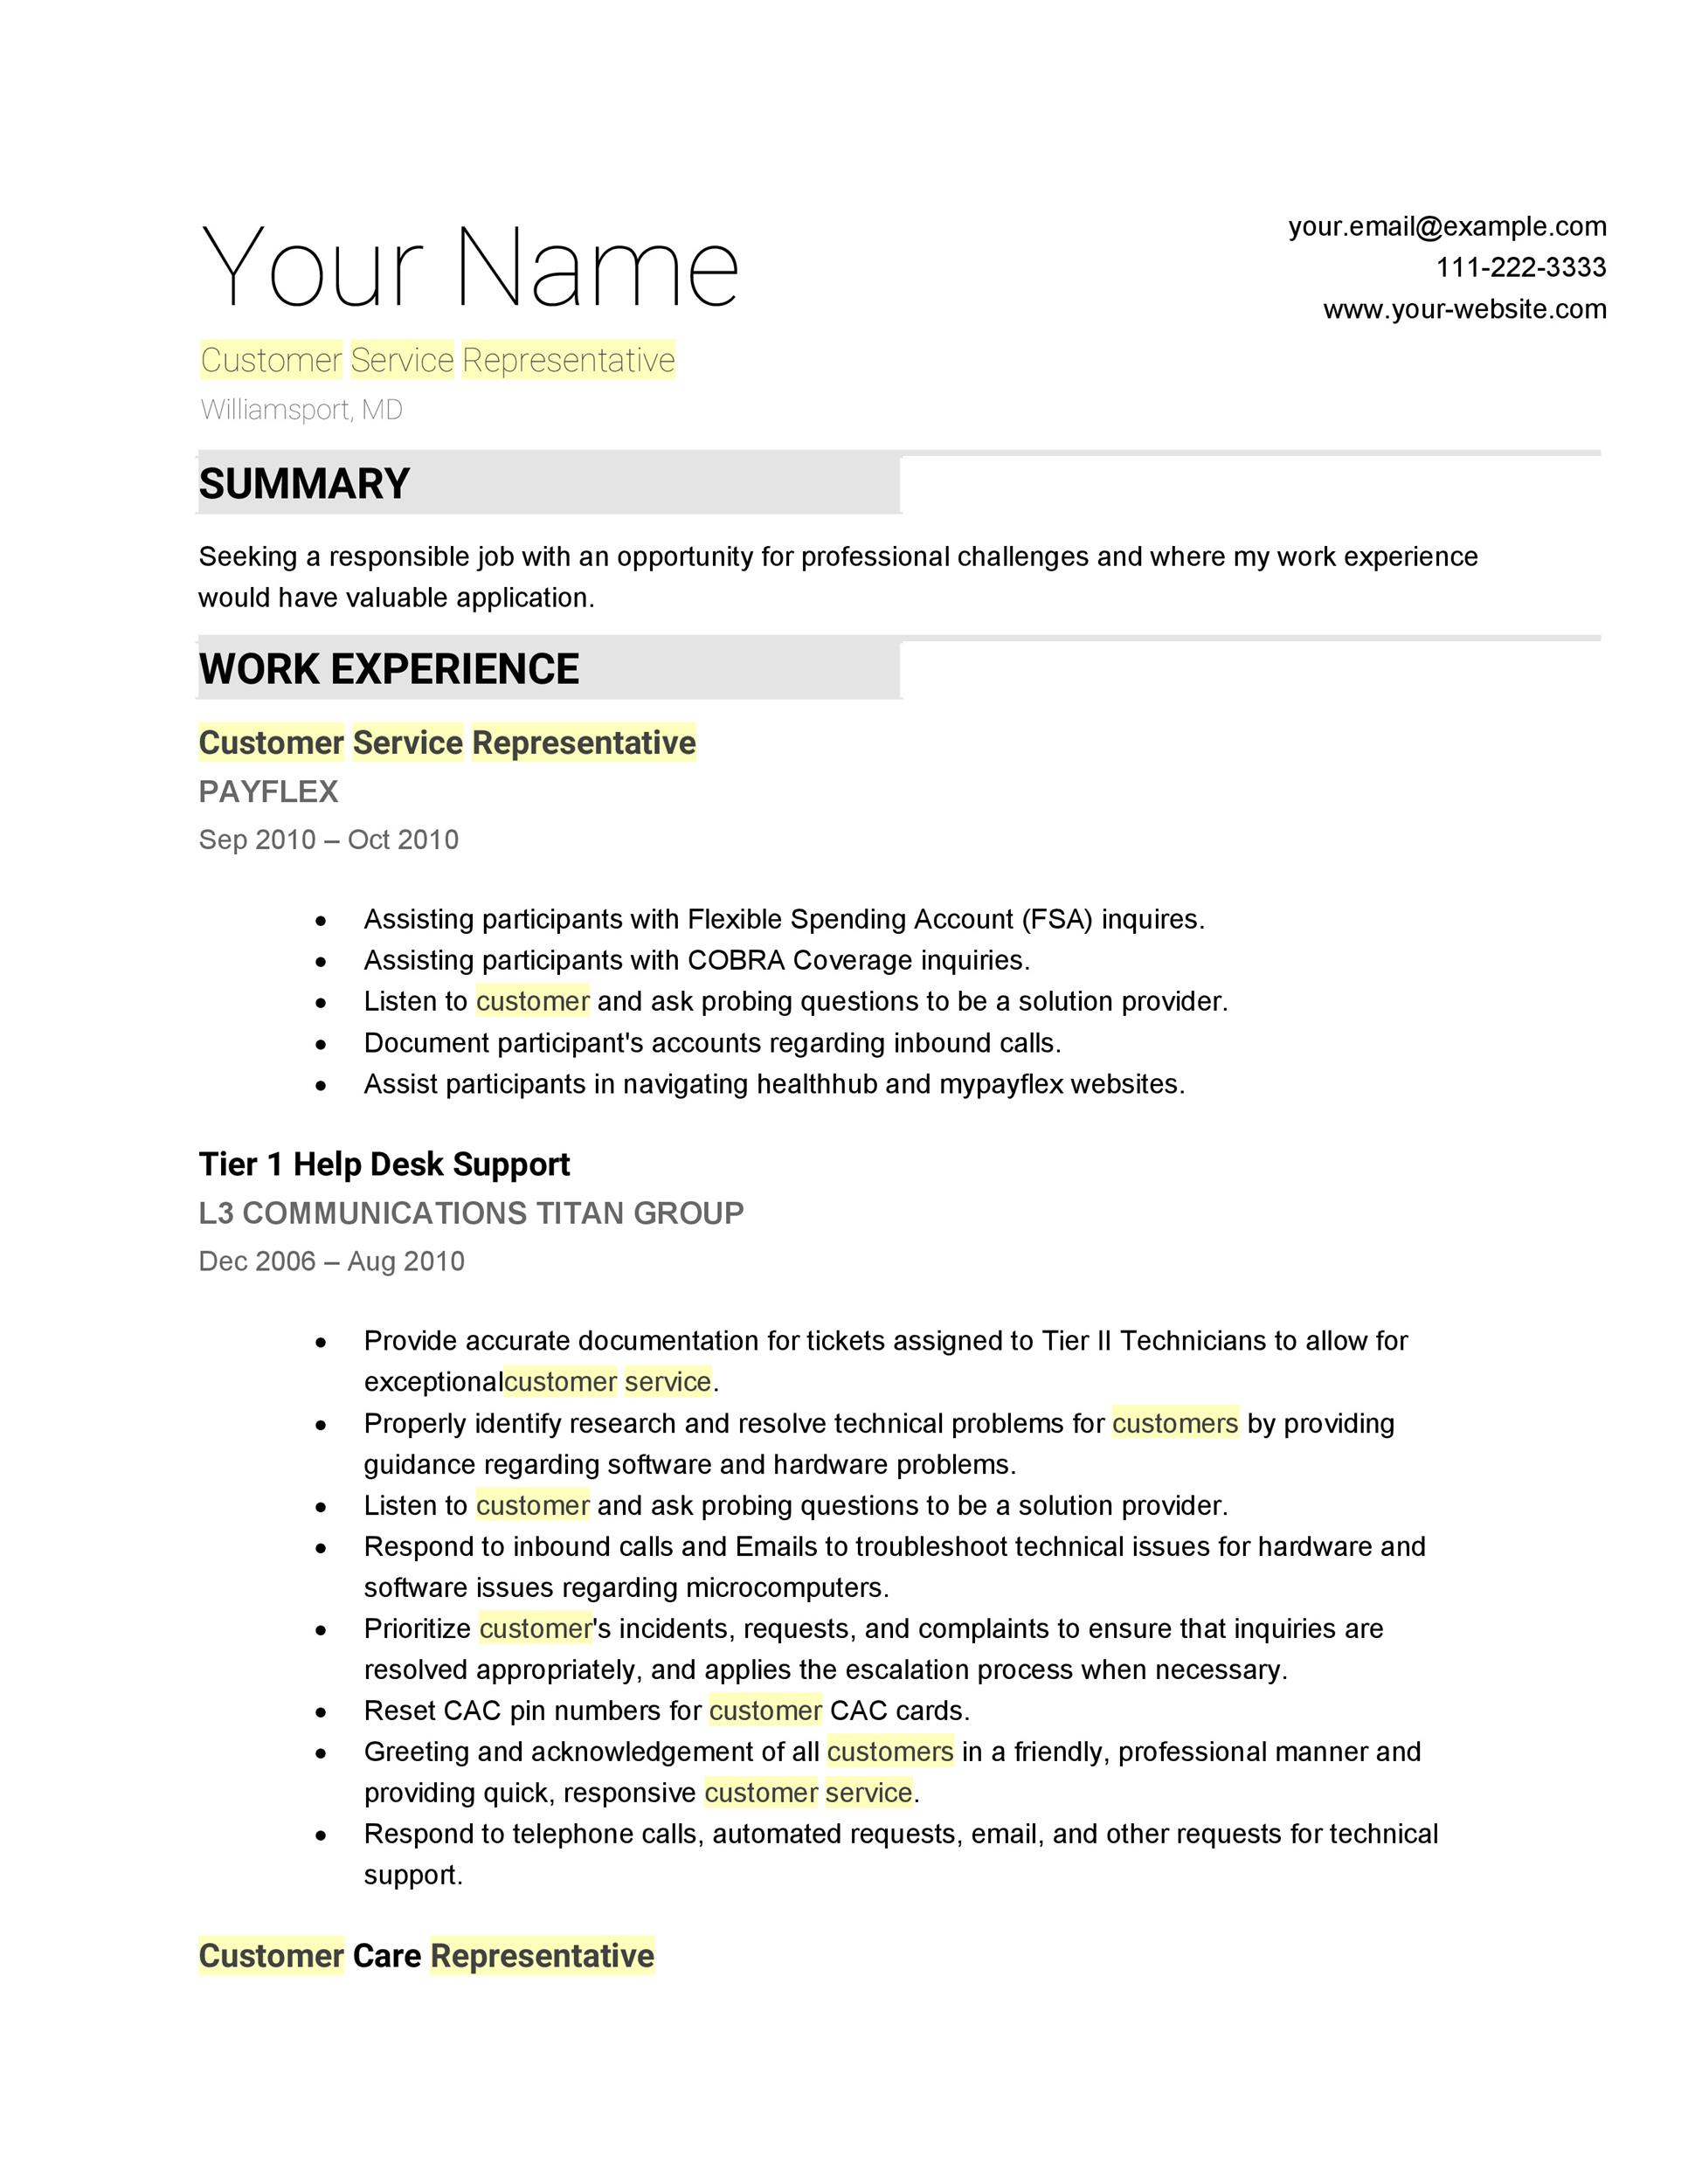 customer service resume templates - Customer Service Job Resume